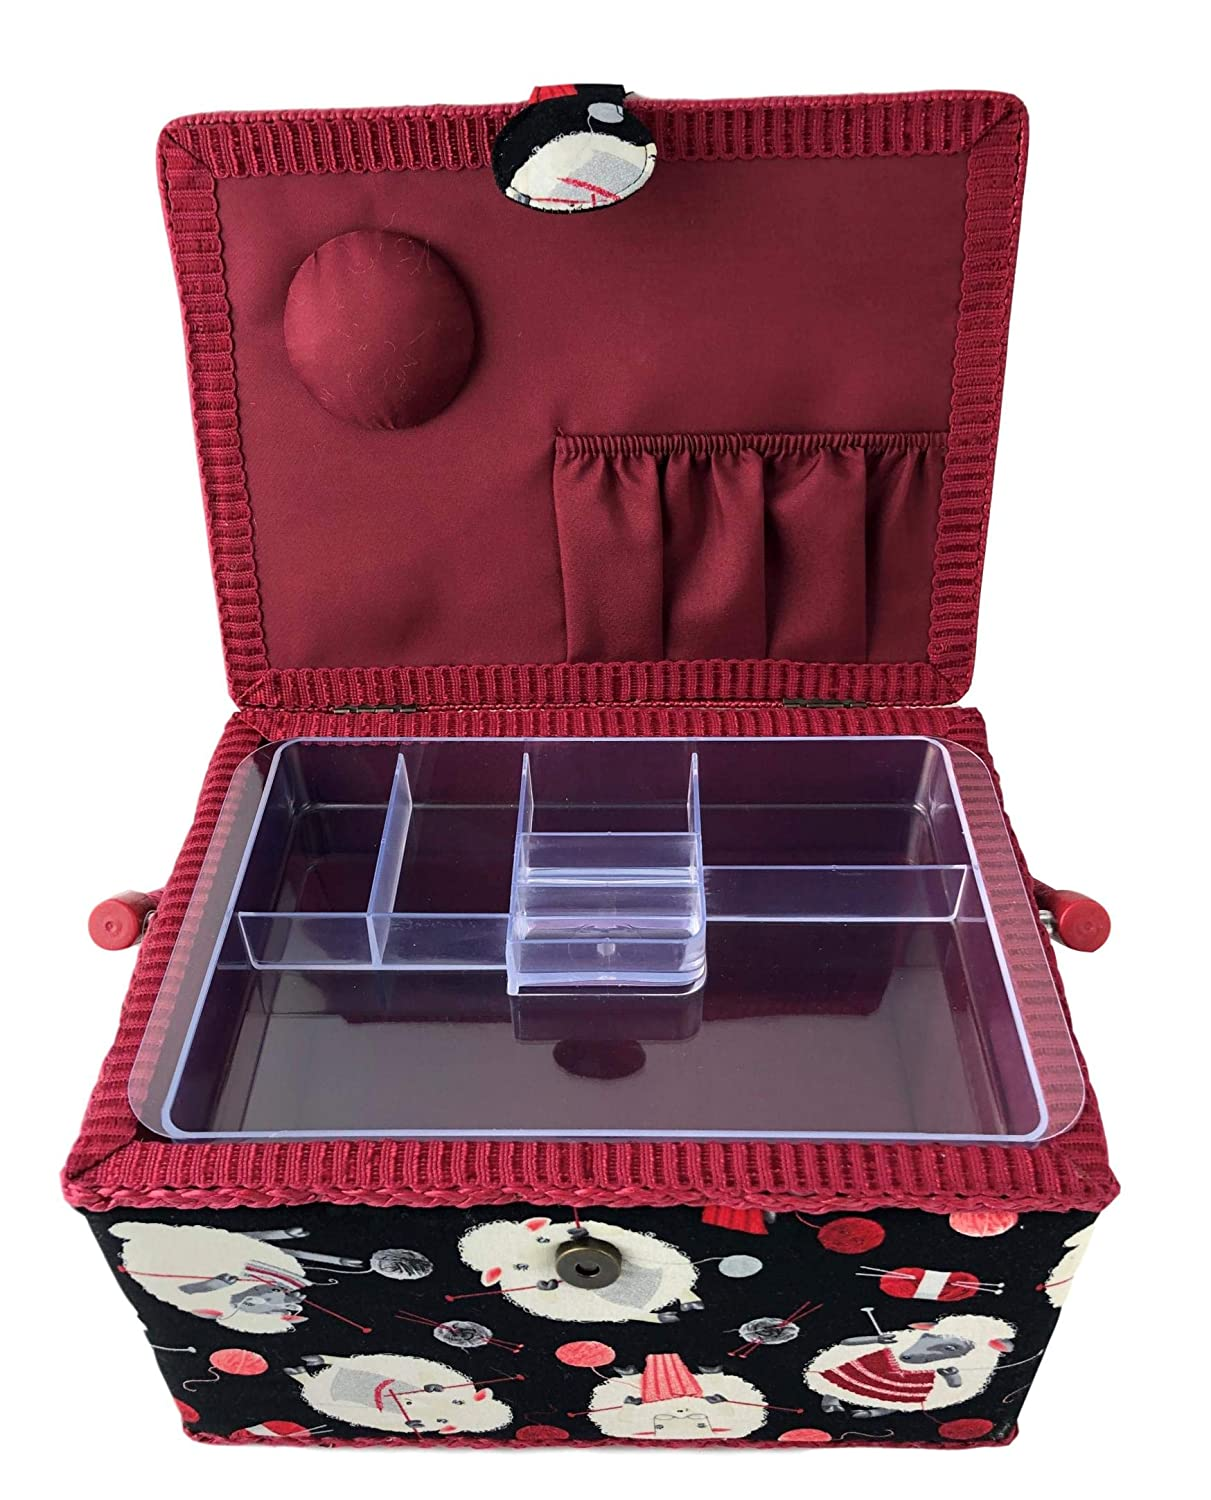 Dritz St Jane Sewing Basket Rectangle Sewing Box Sheep 11.5 x 8.75 x 7.5 inches